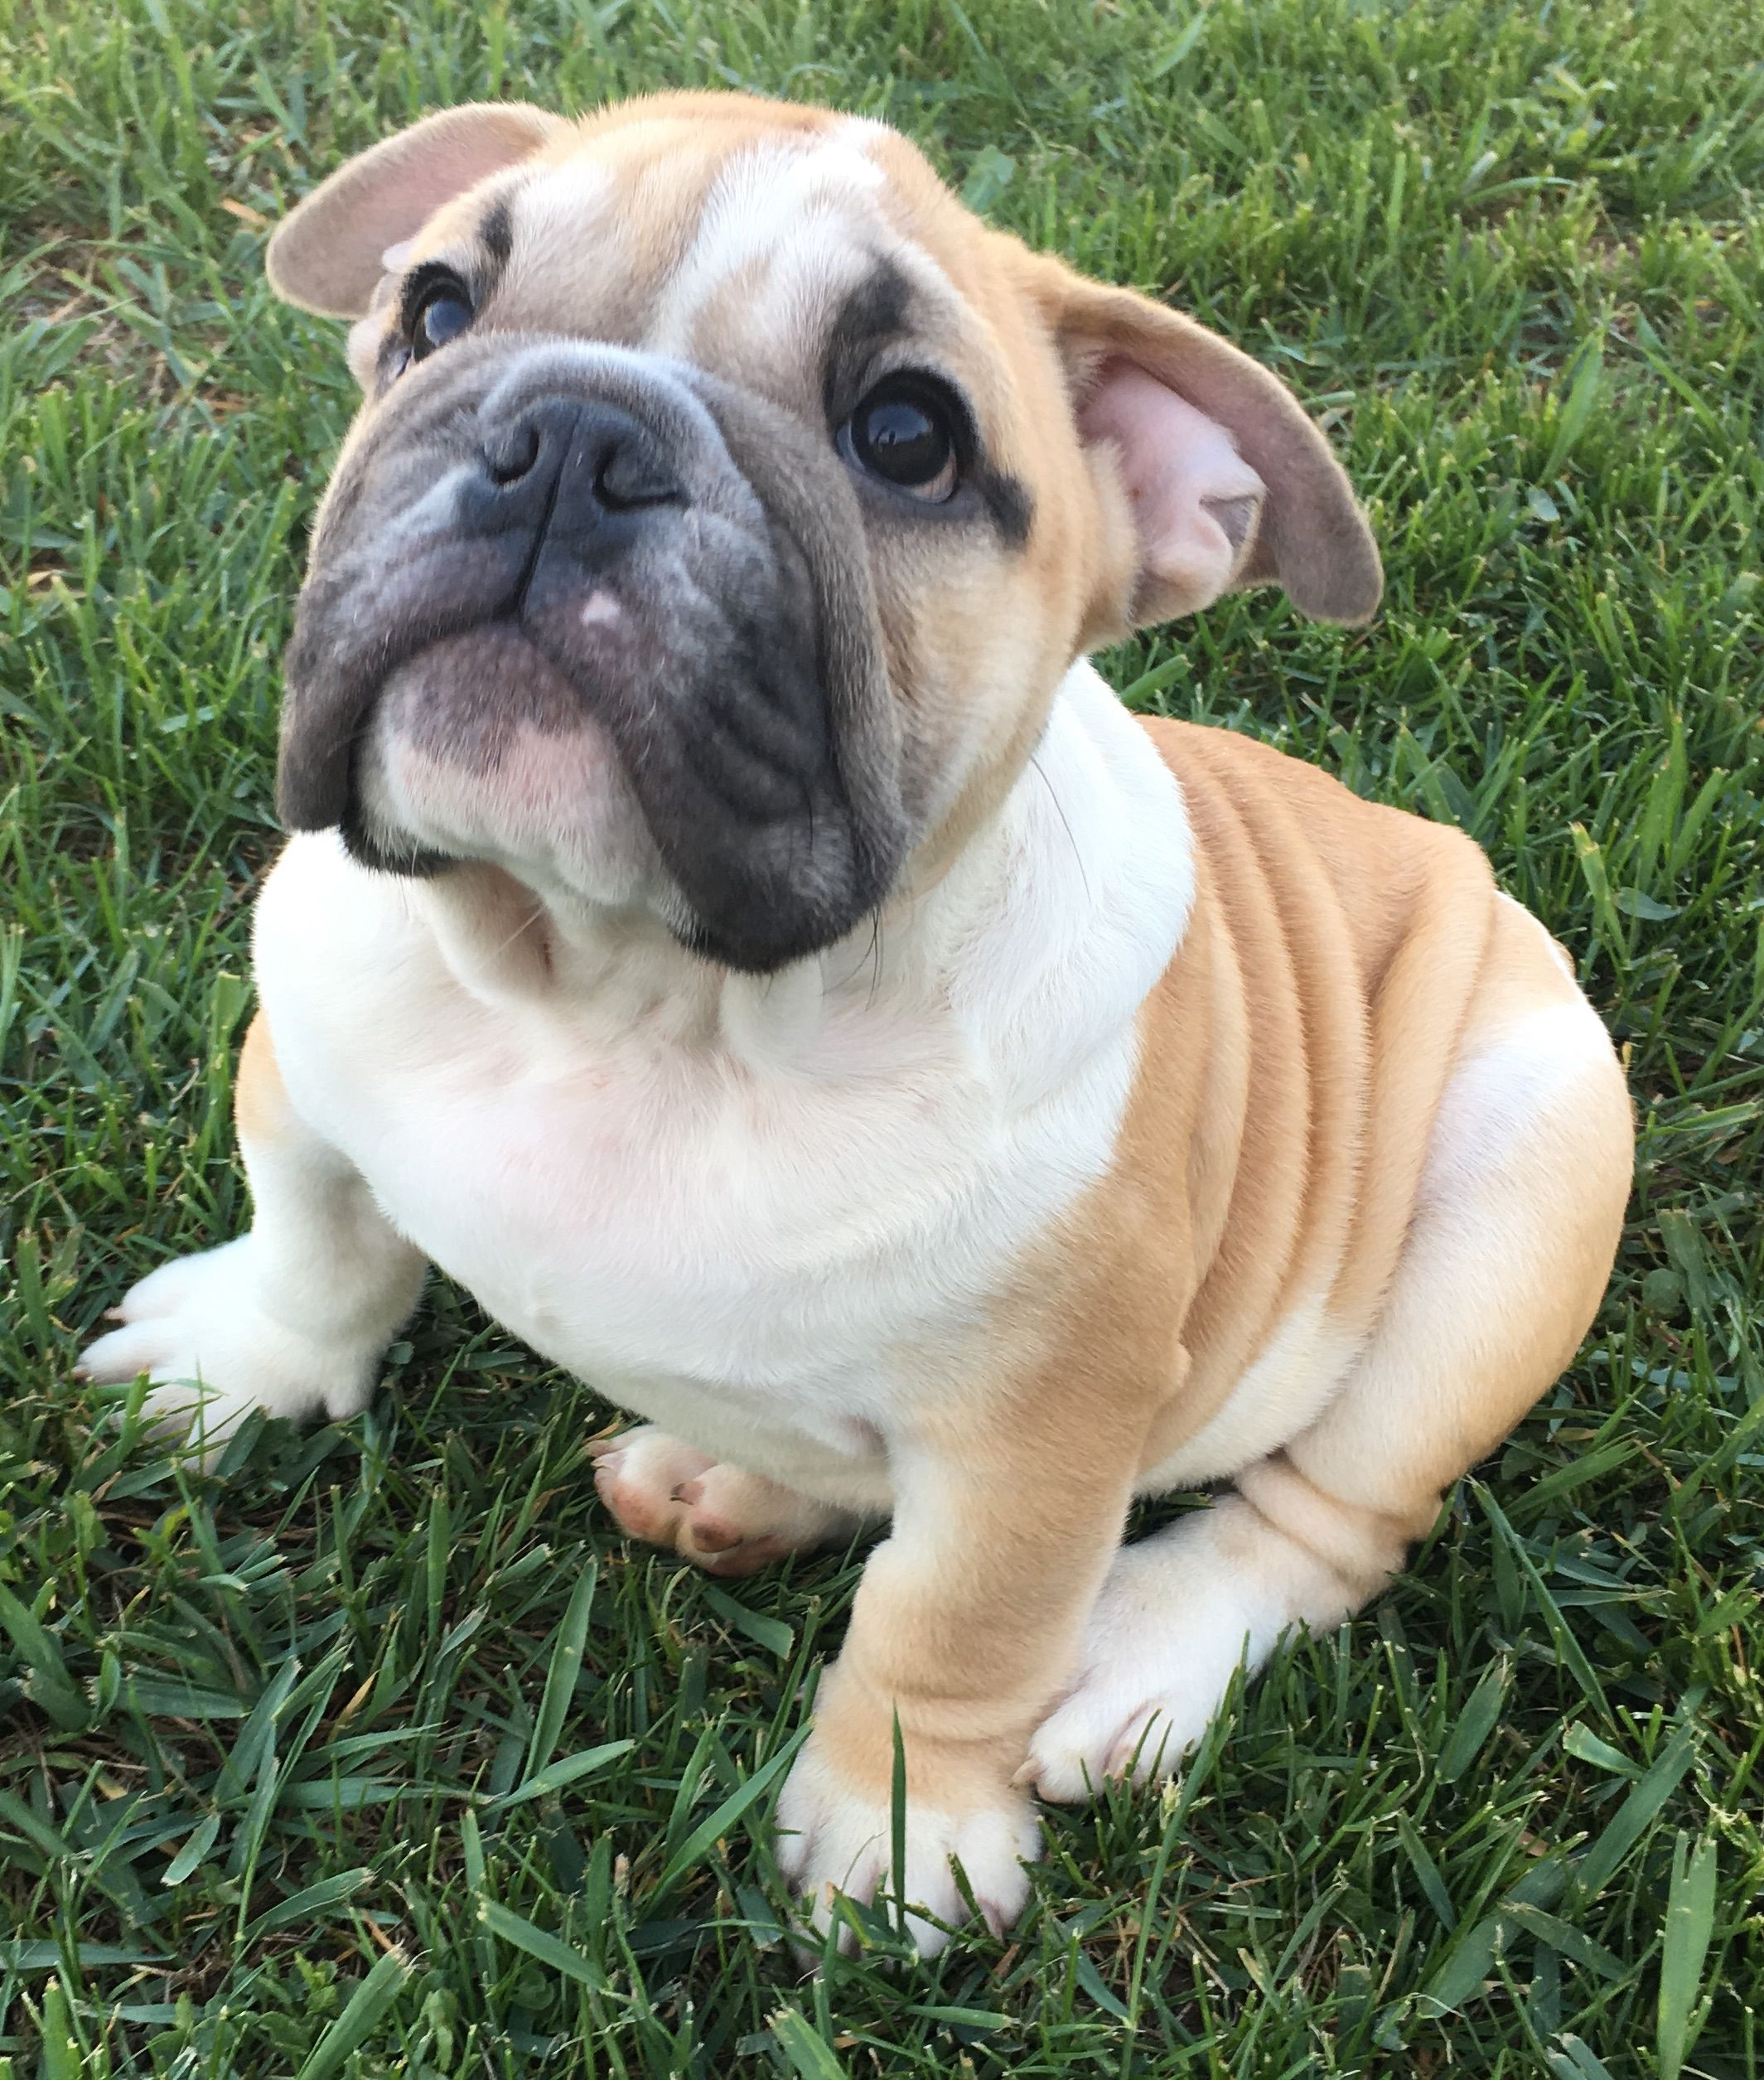 Alvin Is A Fawn Male English Bulldog Puppy American Born And Raised With Champion Lines Being S Cute Dogs And Puppies English Bulldog Puppy Puppies